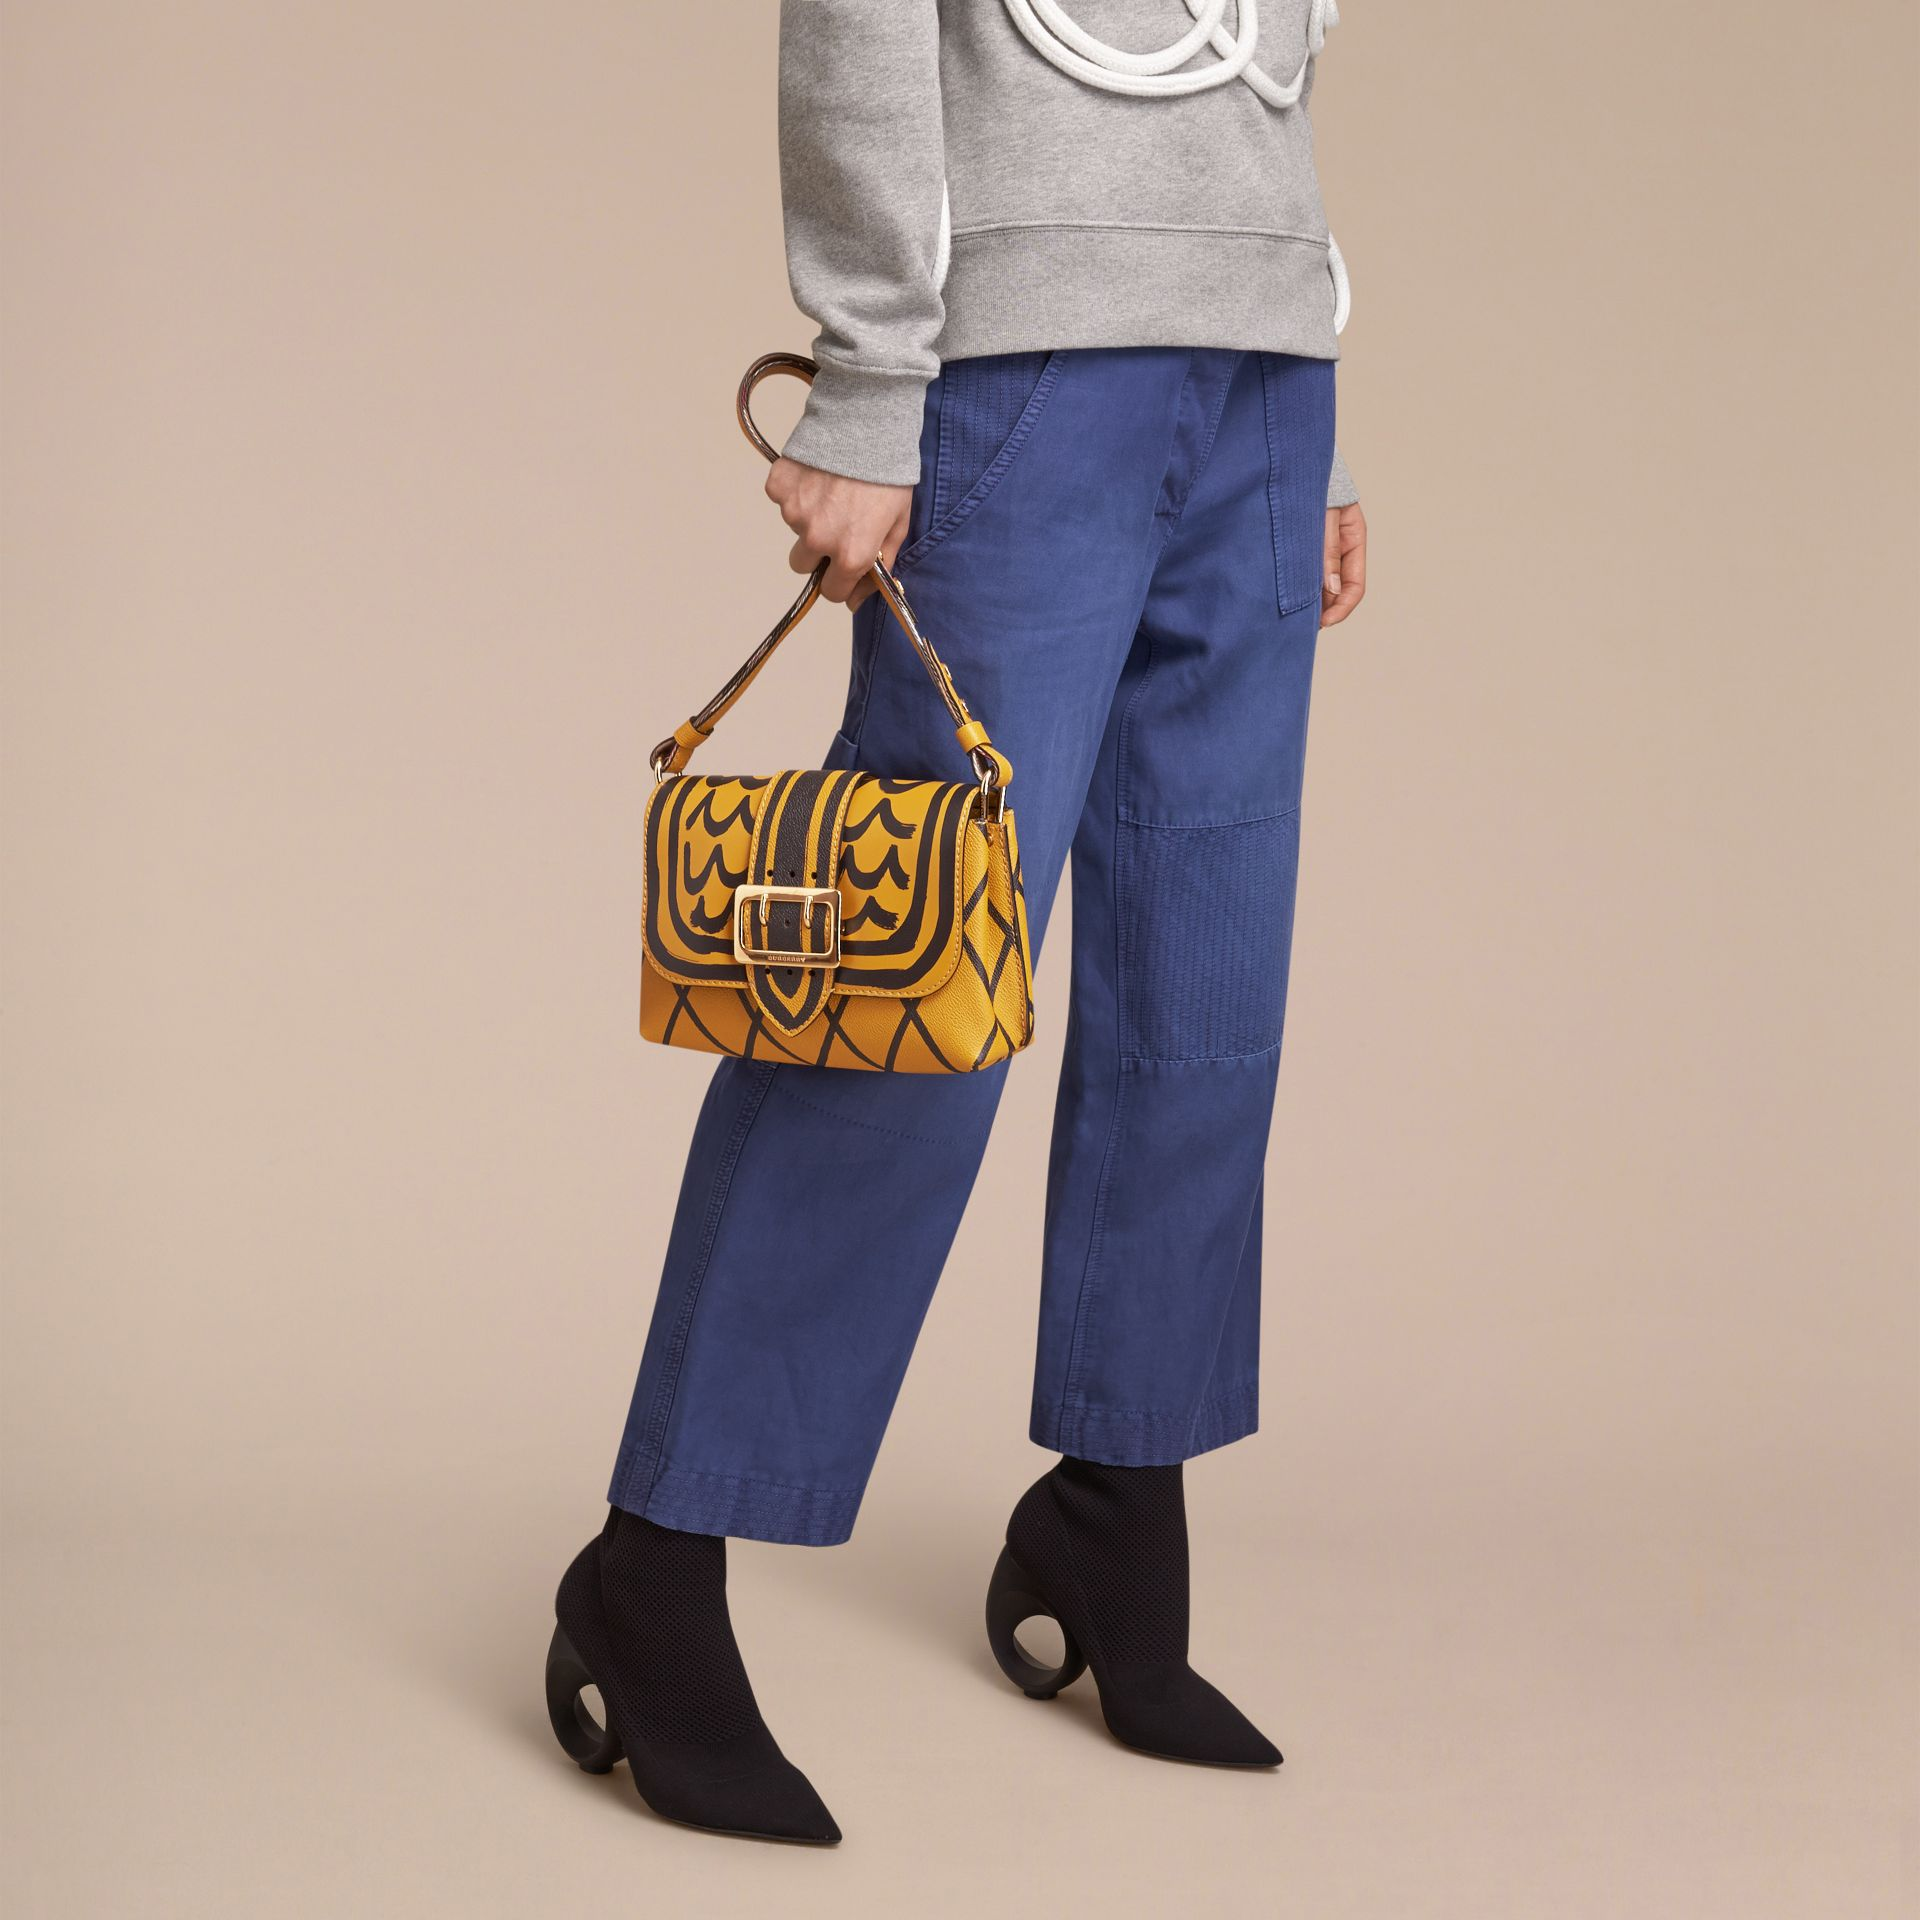 The Buckle Crossbody Bag in Trompe L'oeil Leather in Bright Straw - gallery image 8